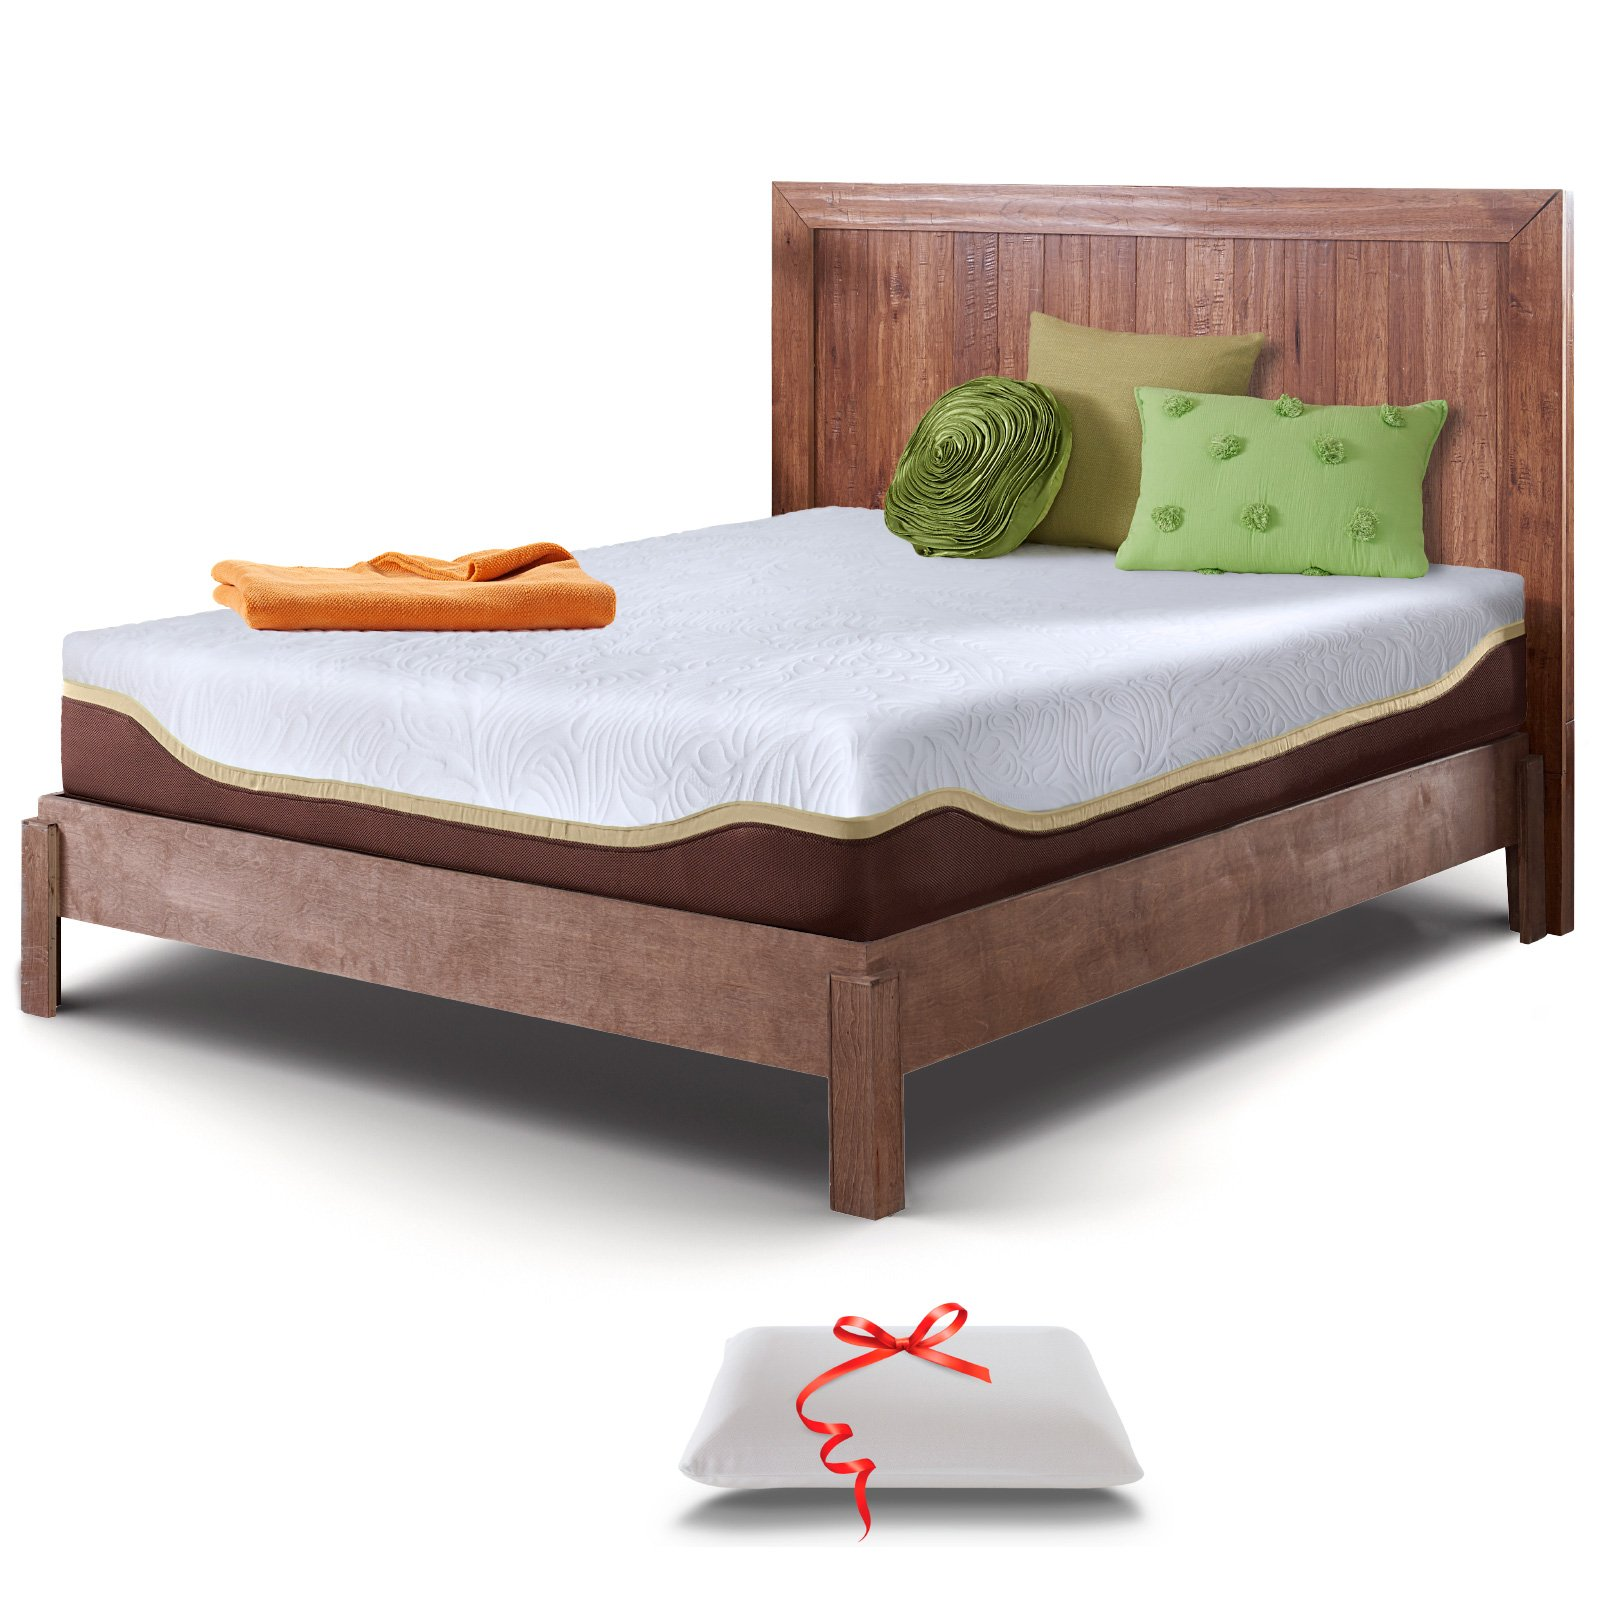 Live and Sleep Resort Elite Full/Double Size, 10-Inch Firm Cooling Gel Memory Foam Mattress and Pillow, CertiPUR Certified and 20-Year Warranty